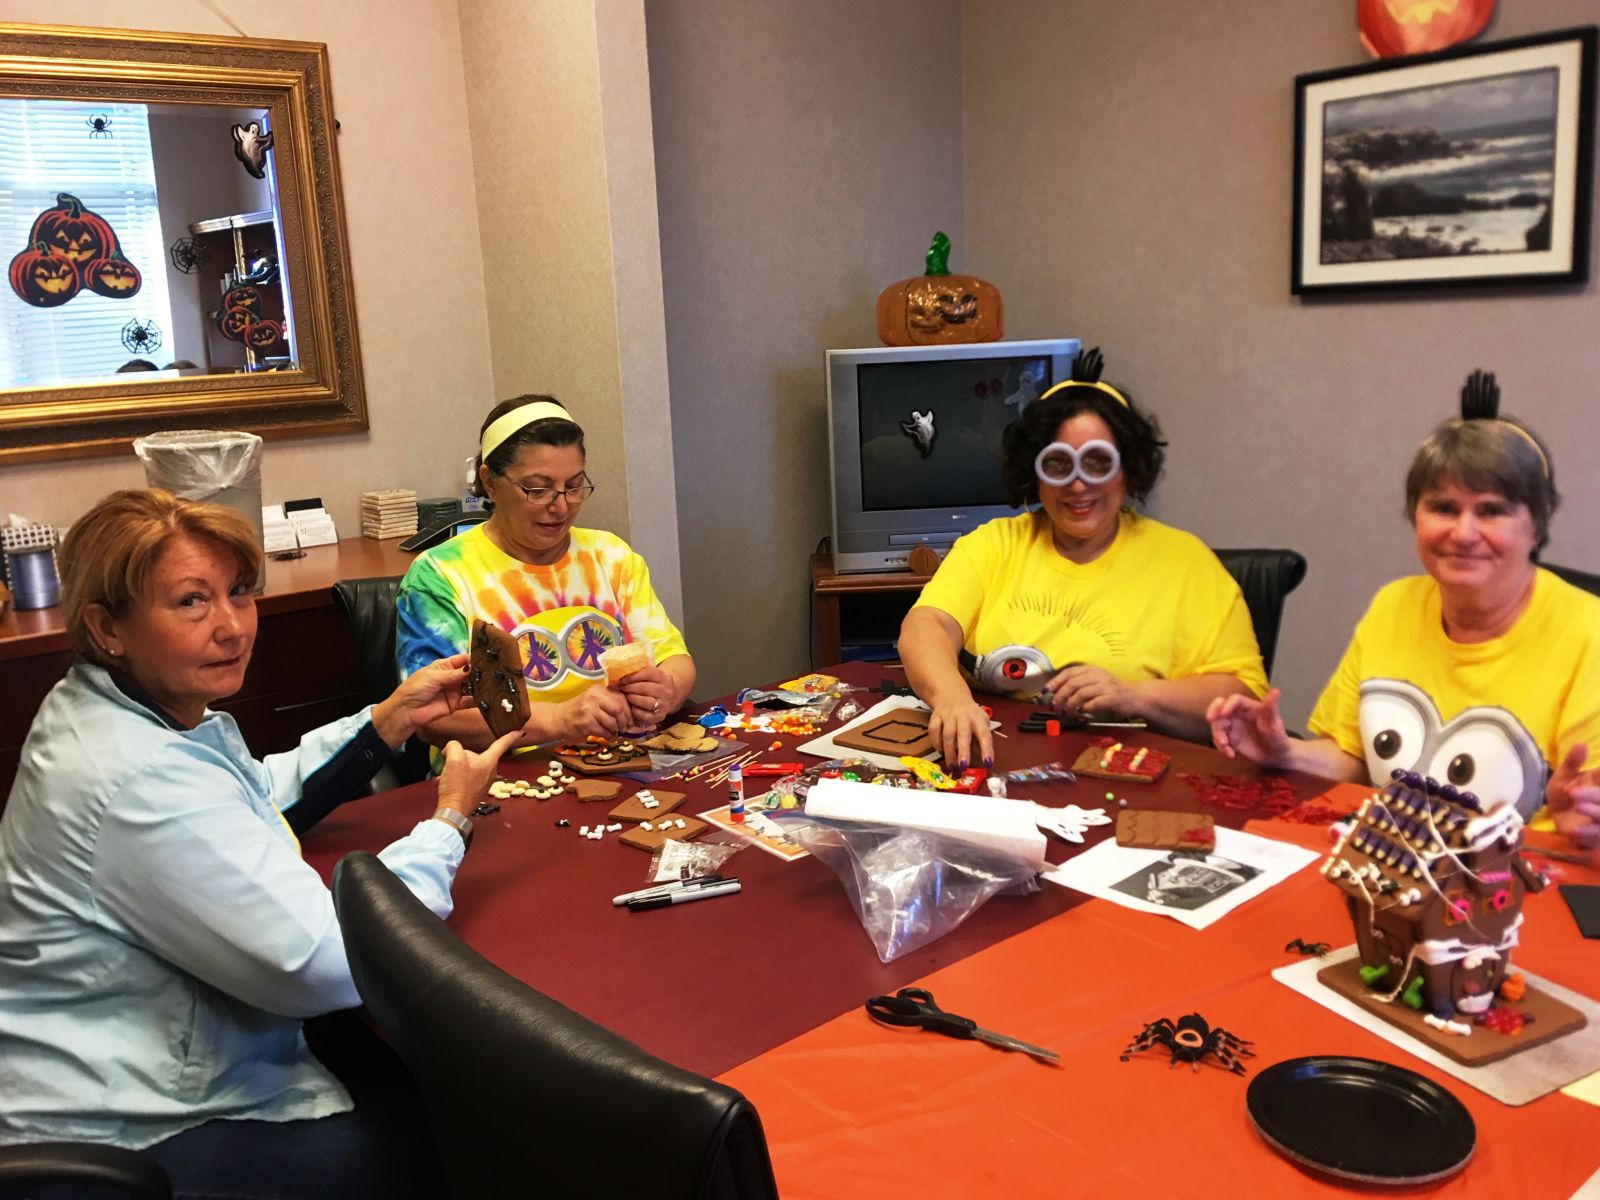 The Estate Administration Department at work on their haunted house. (L-R) Paralegals Janet Suarez, Ana Stalker, Norma Cruz and Gail Brown